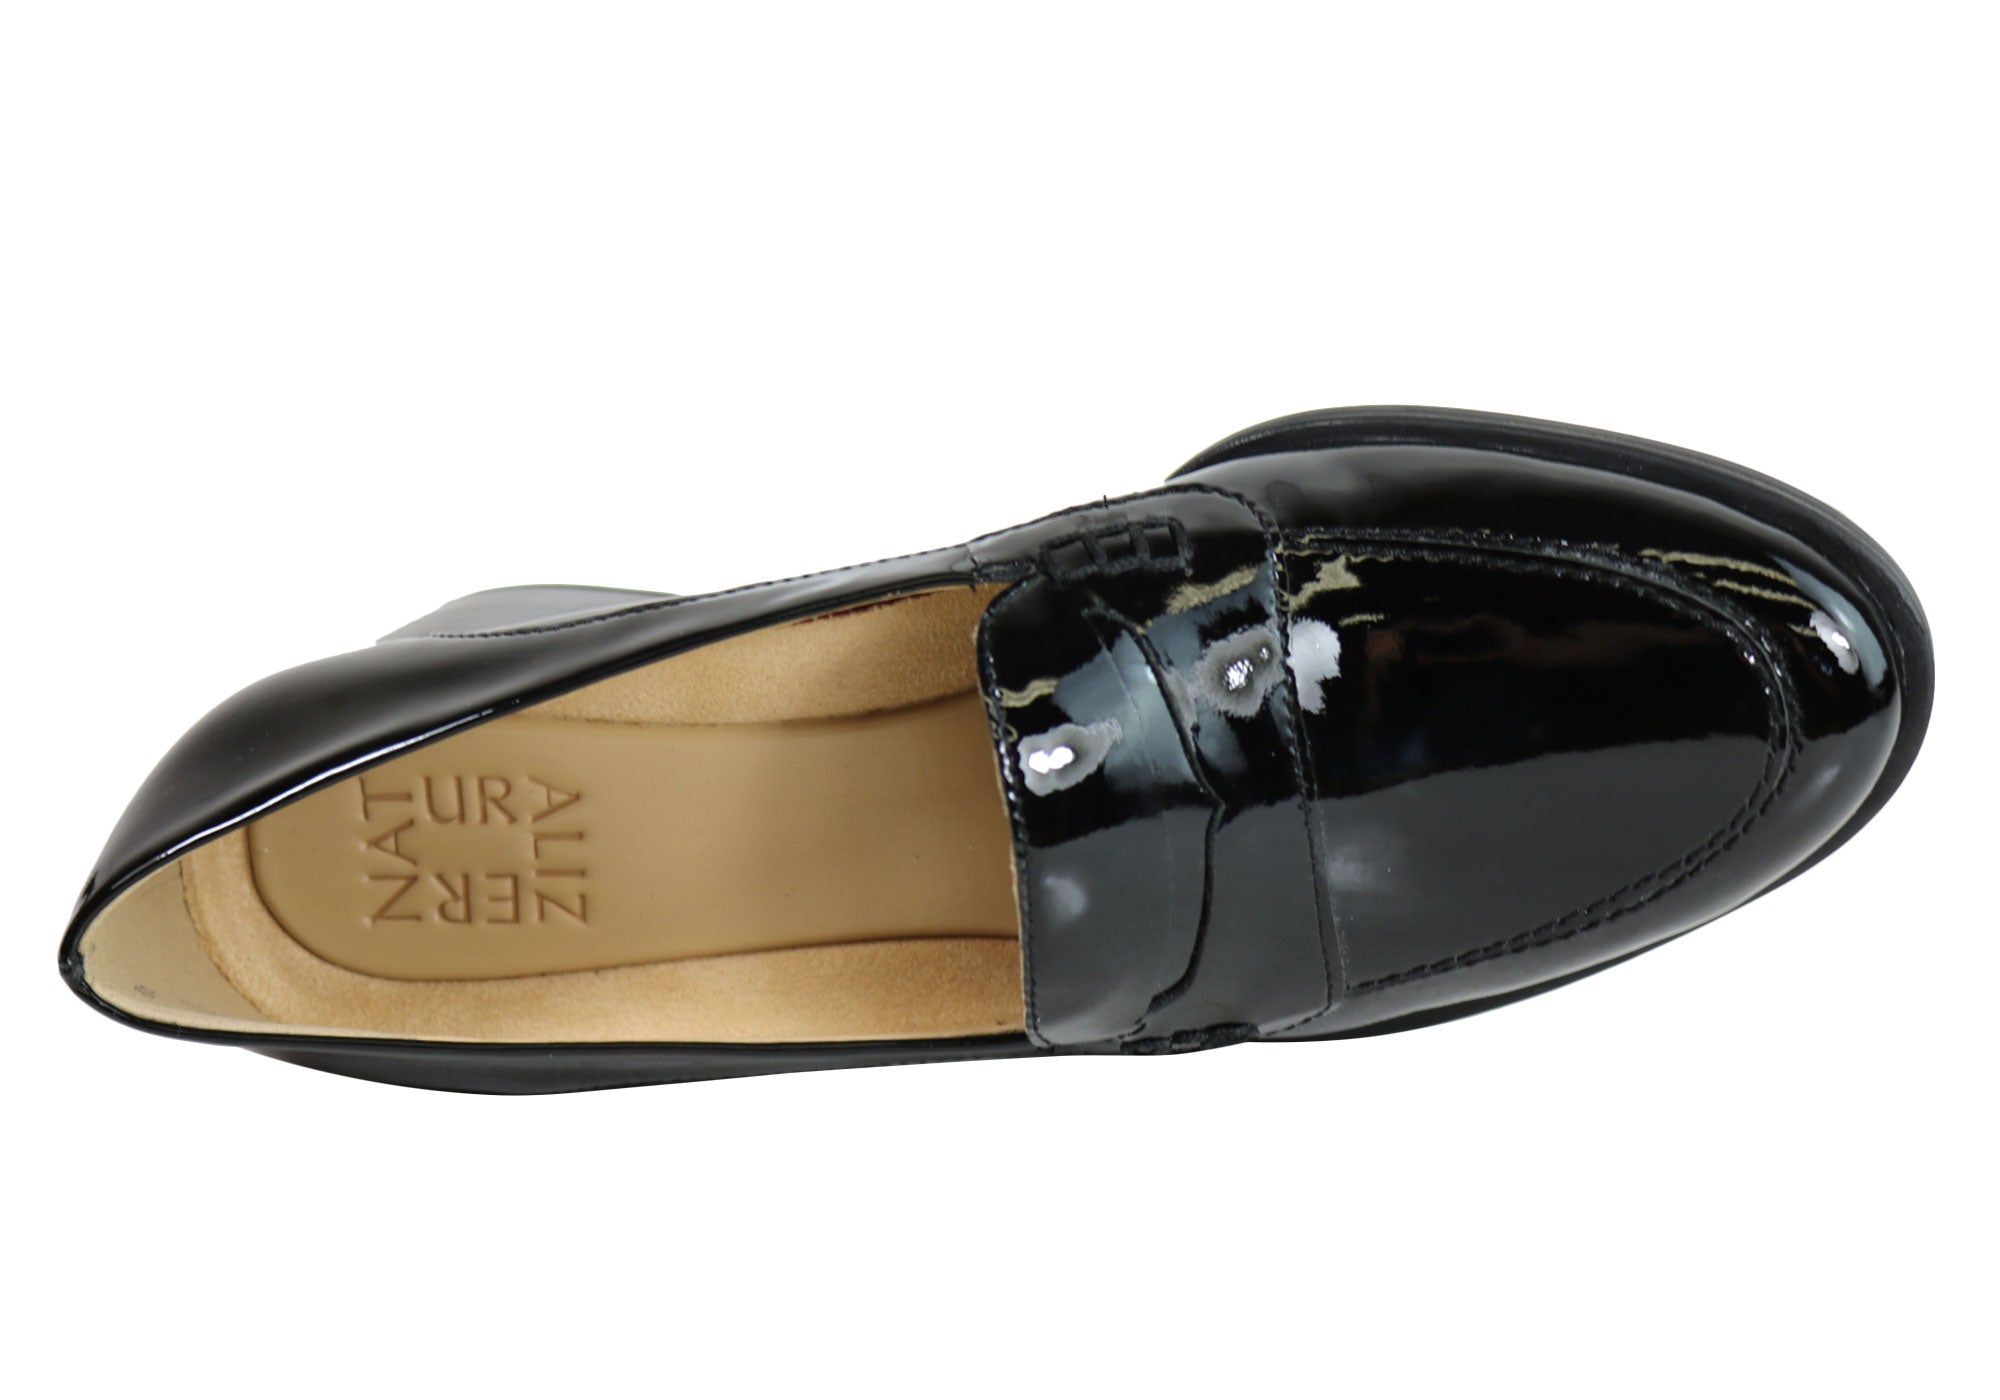 db5a46e18e9 Home Naturalizer Dinah Womens Mid Heel Patent Leather Loafer Comfort Pumps.  Black Patent  Black Patent  Black Patent  Black Patent  Black Patent ...